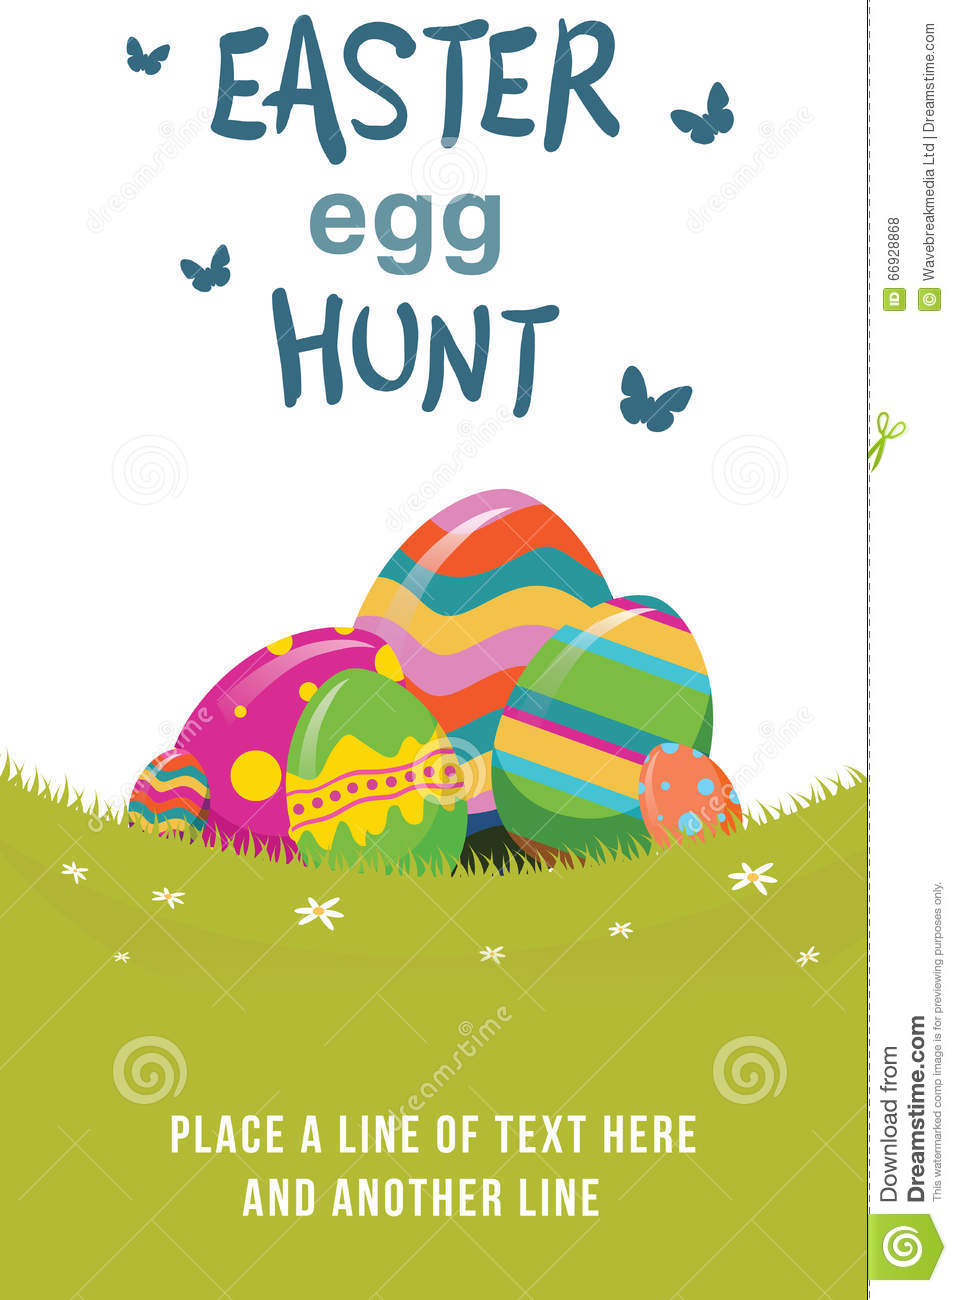 an easter egg hunt graphic stock illustration